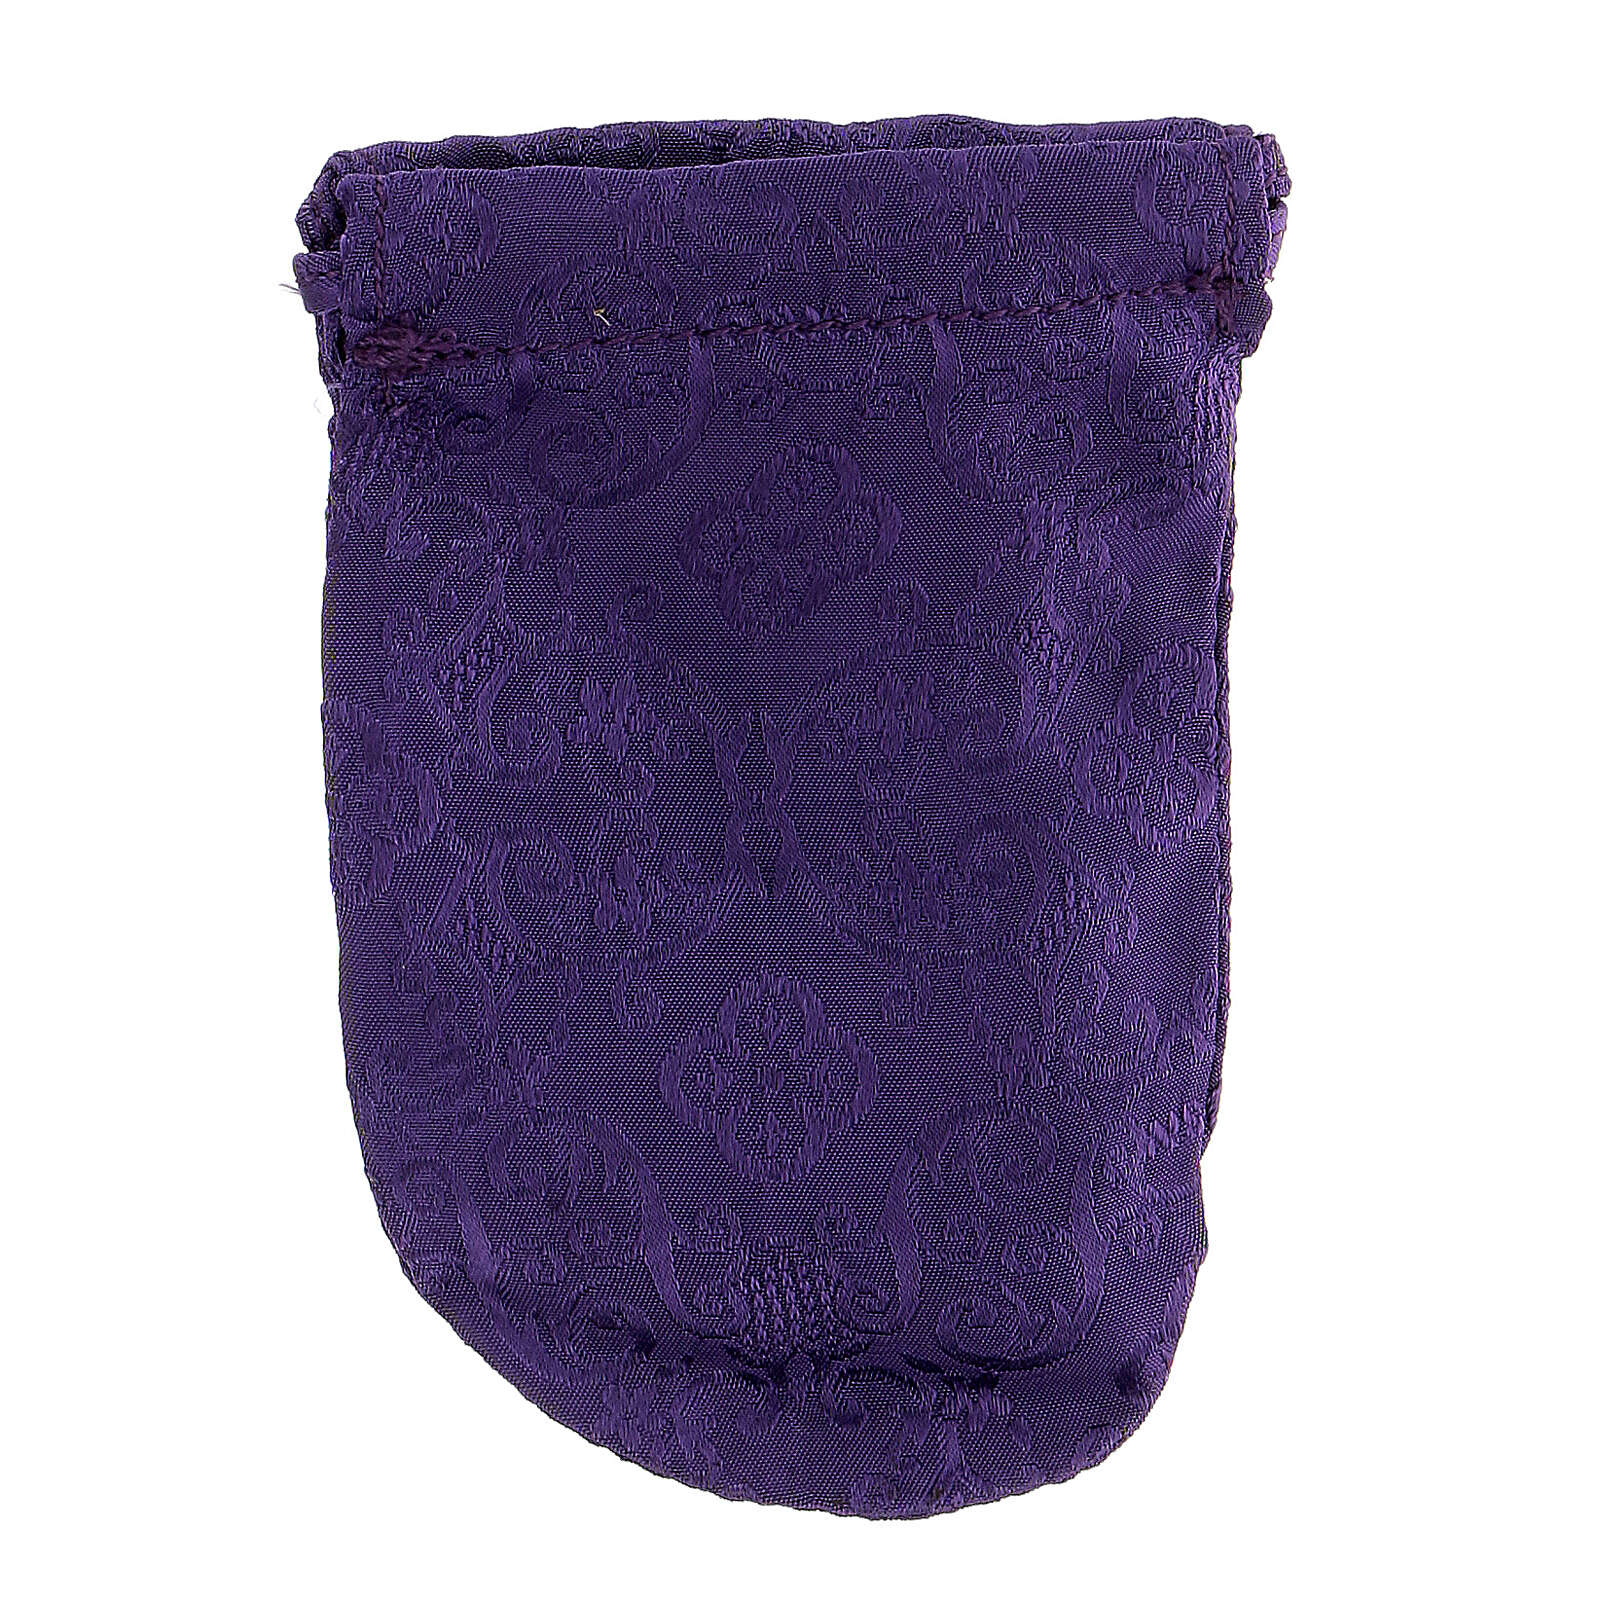 Viaticum burse in purple Jacquard fabric 3 in pyx 3